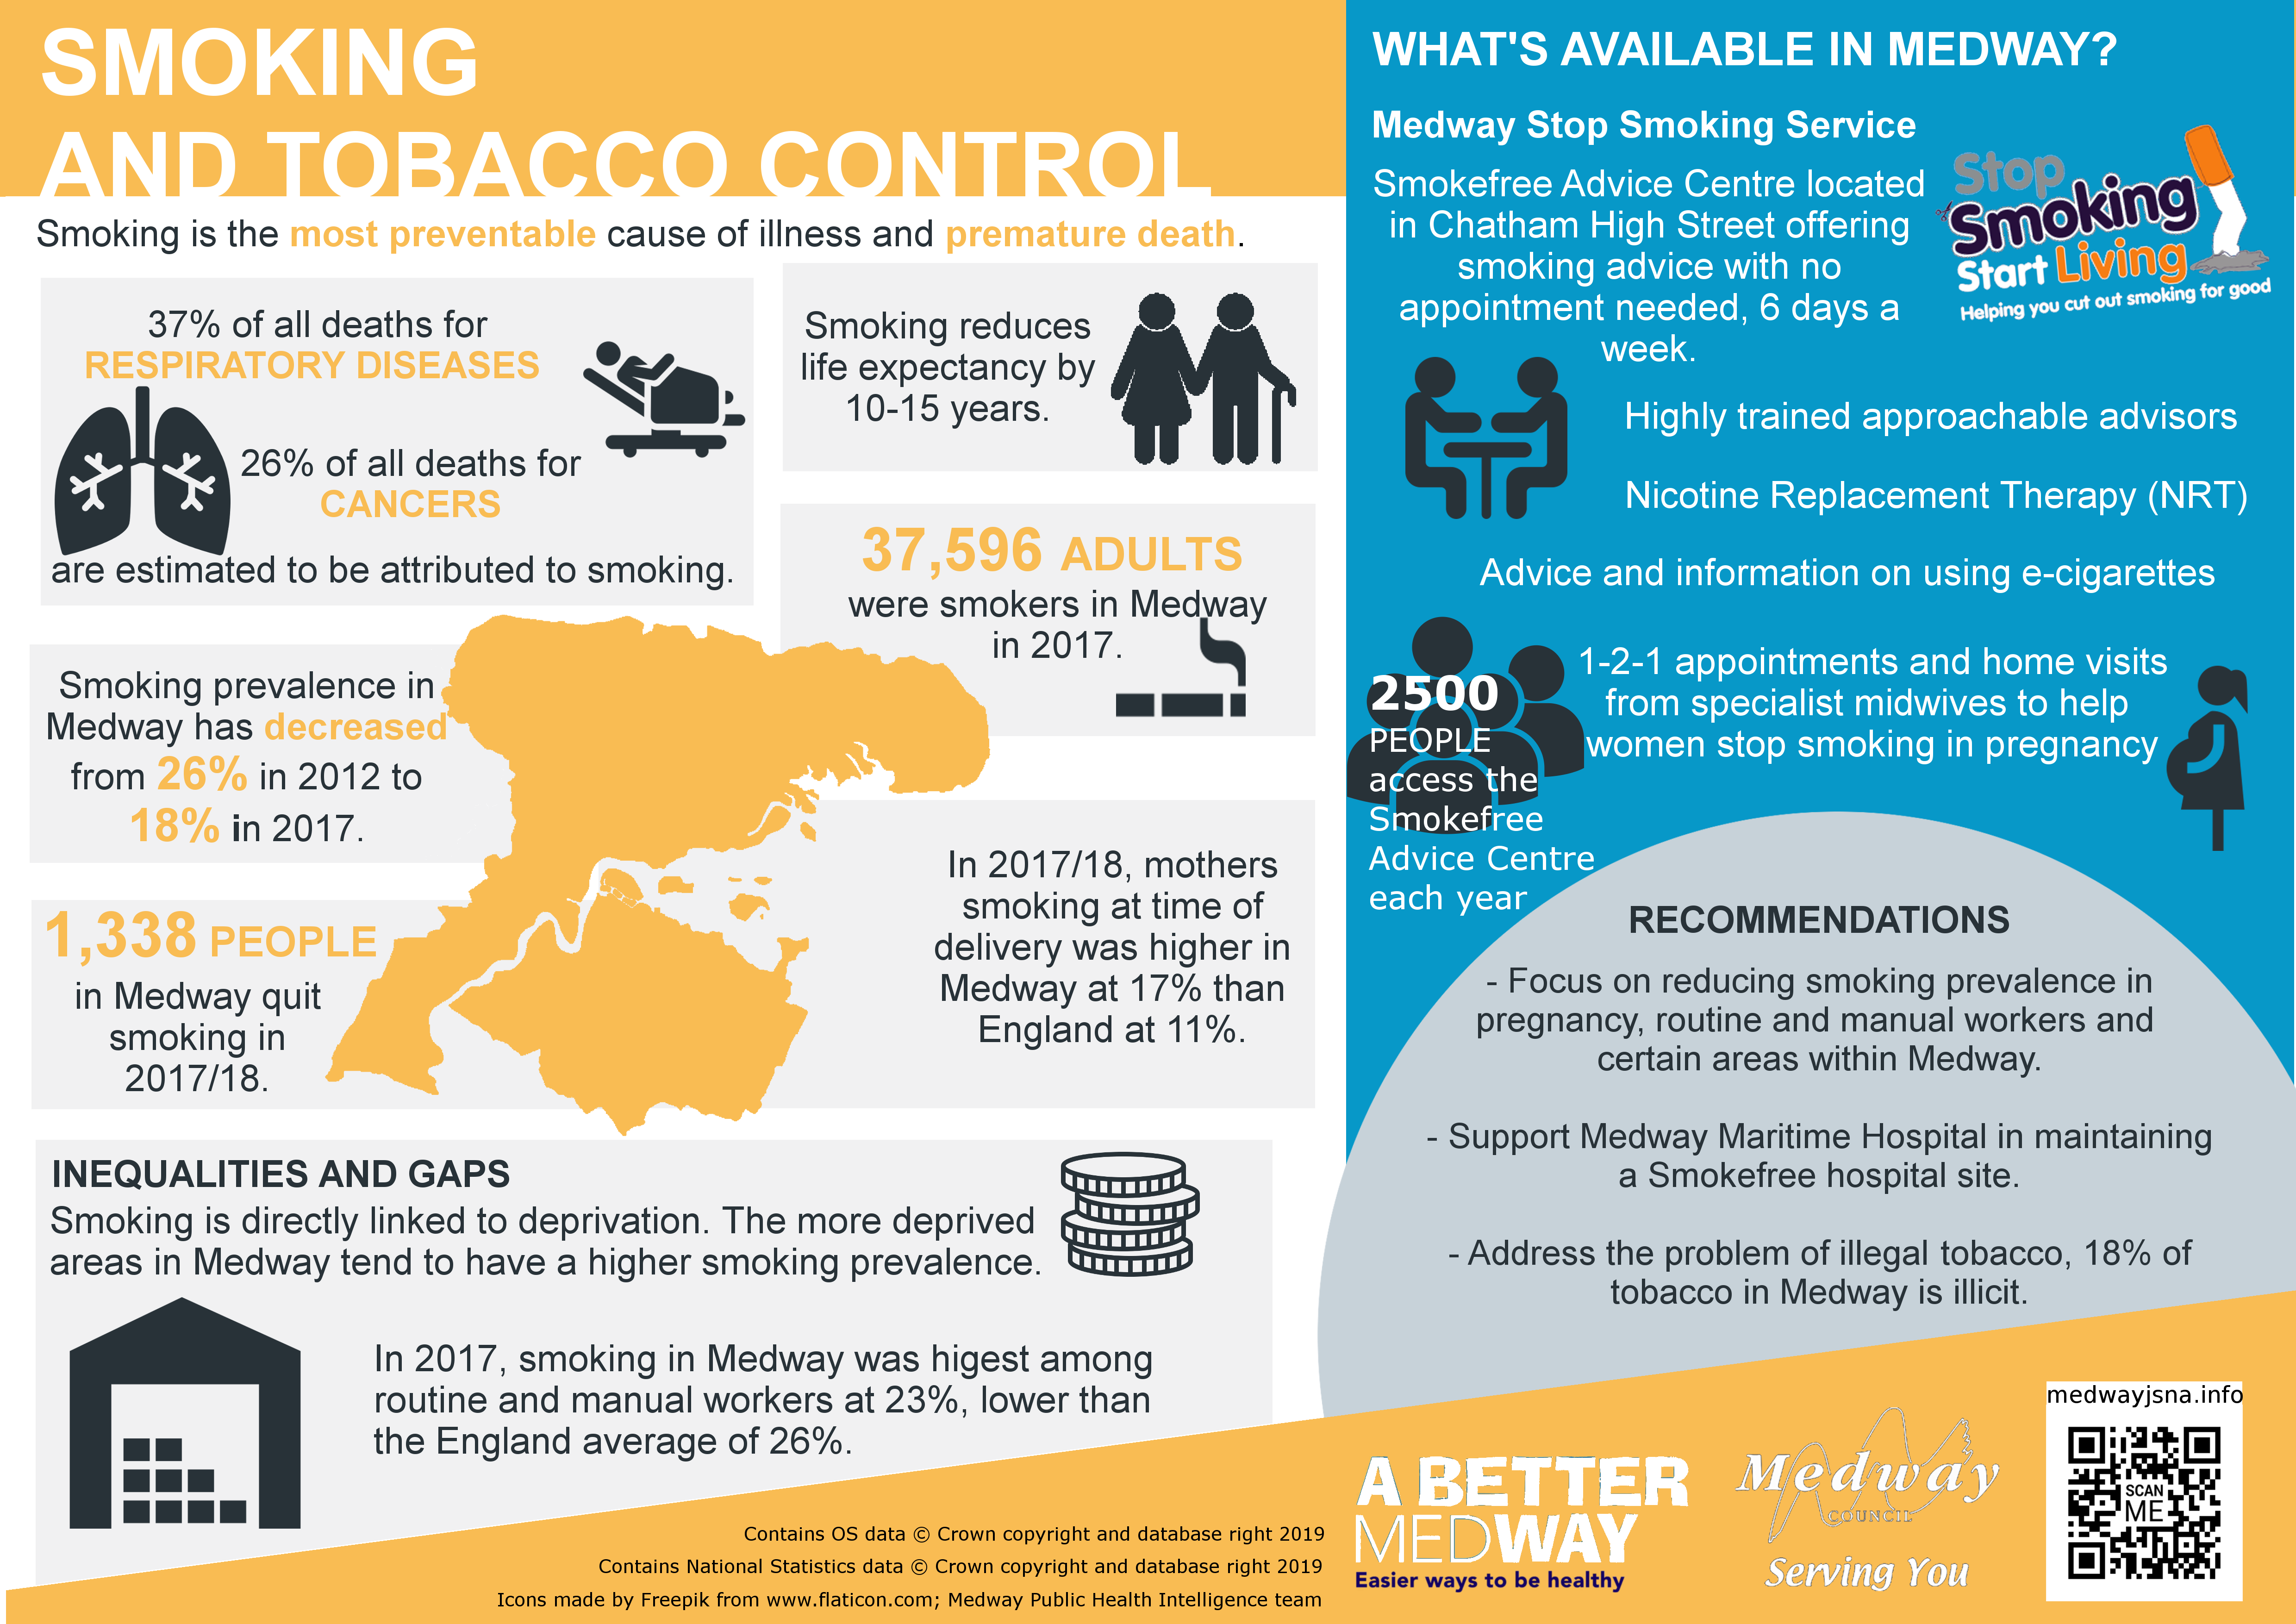 Medway smoking and tobacco control infographic